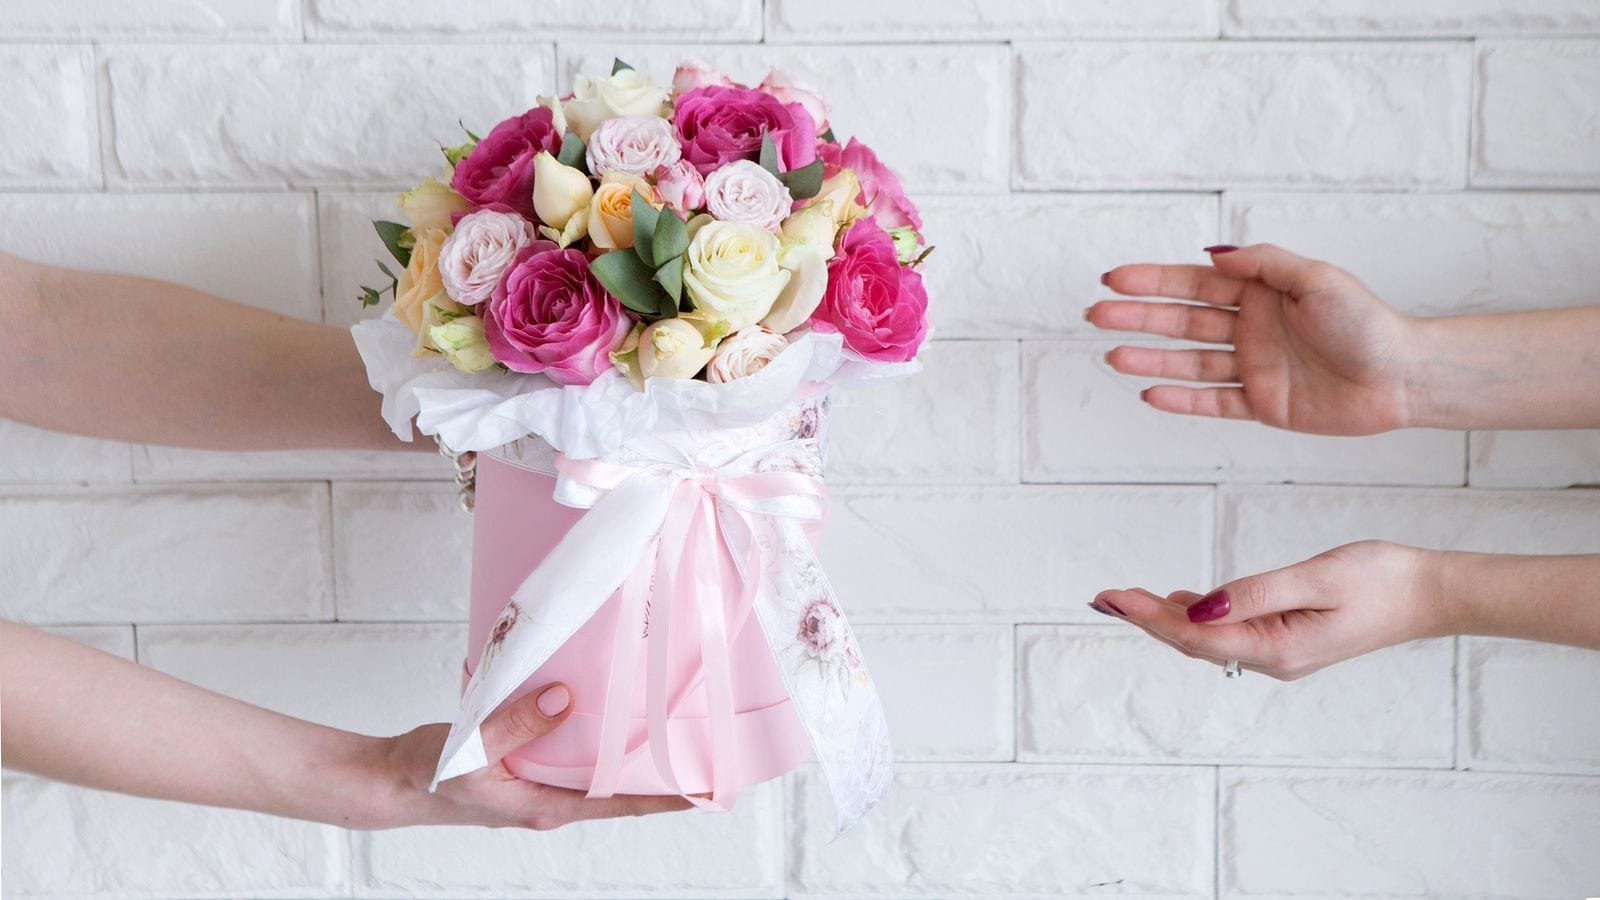 Know how flowers can make them feel special